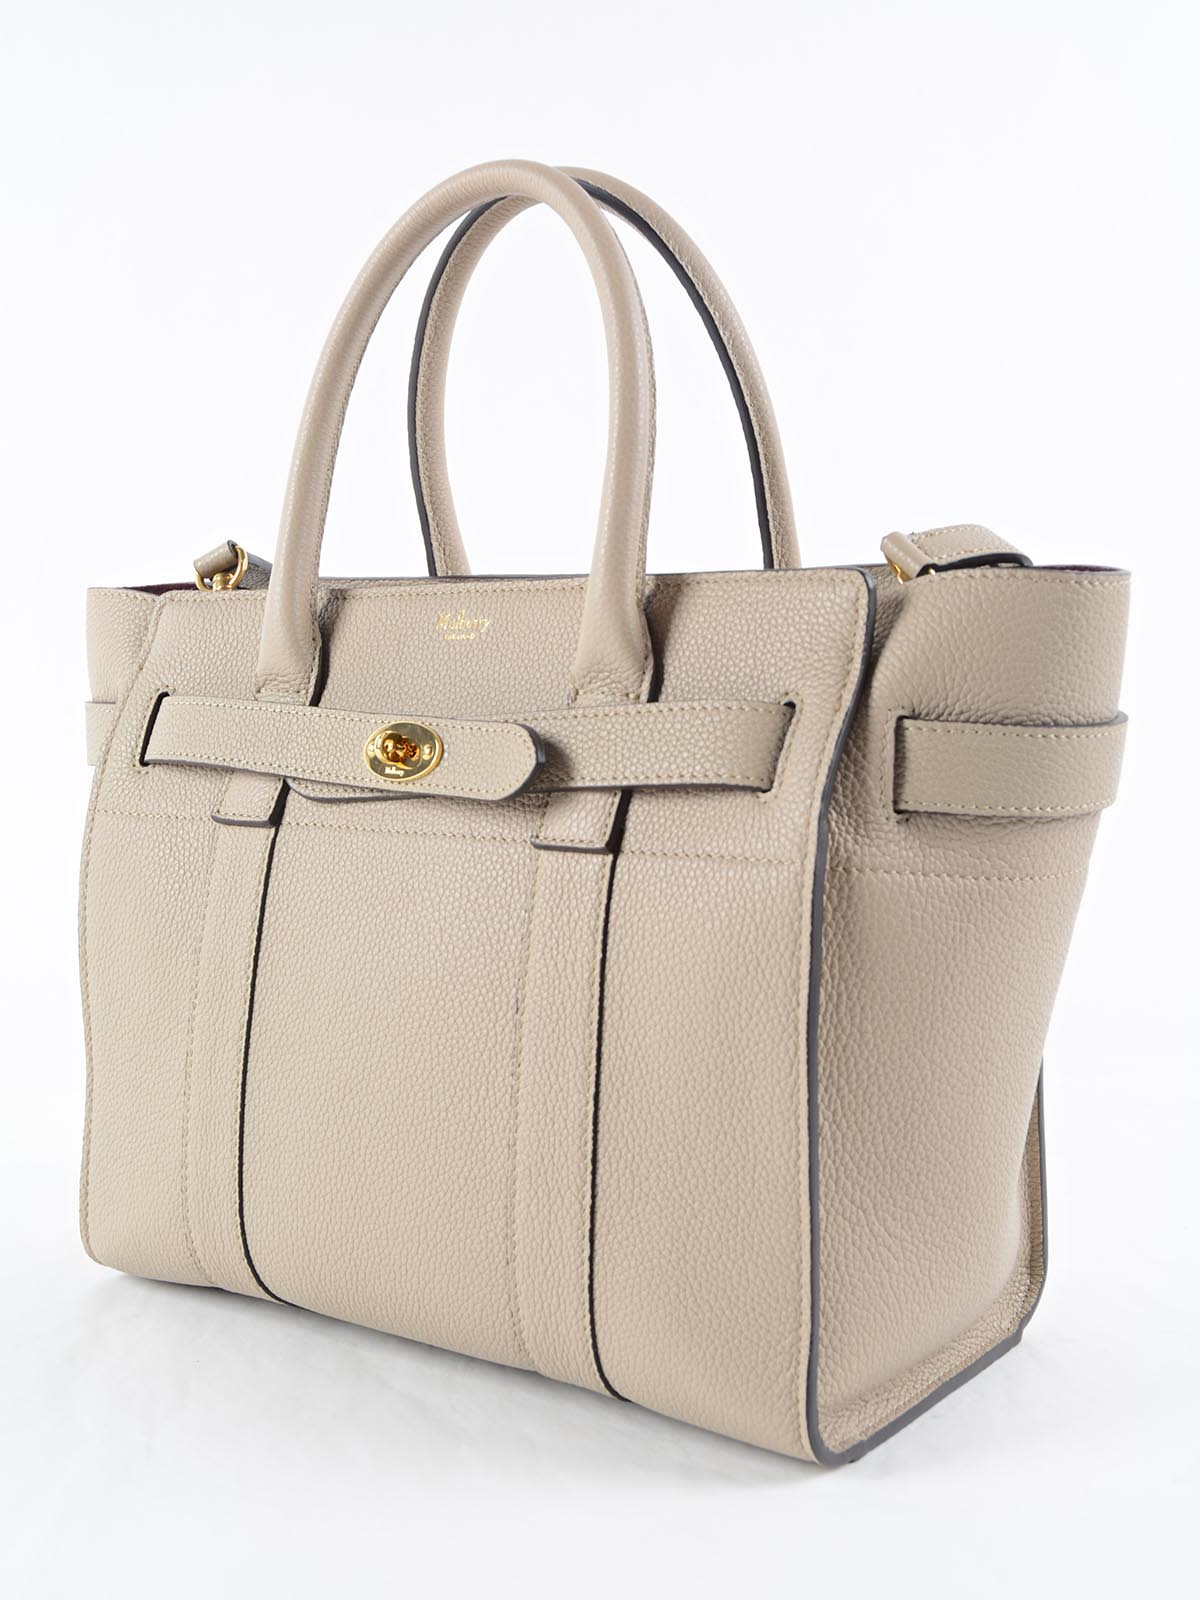 dc8053b2d3b4 Mulberry Small Zip Bayswater Bag - Pdune ... detailed look c0199 ...